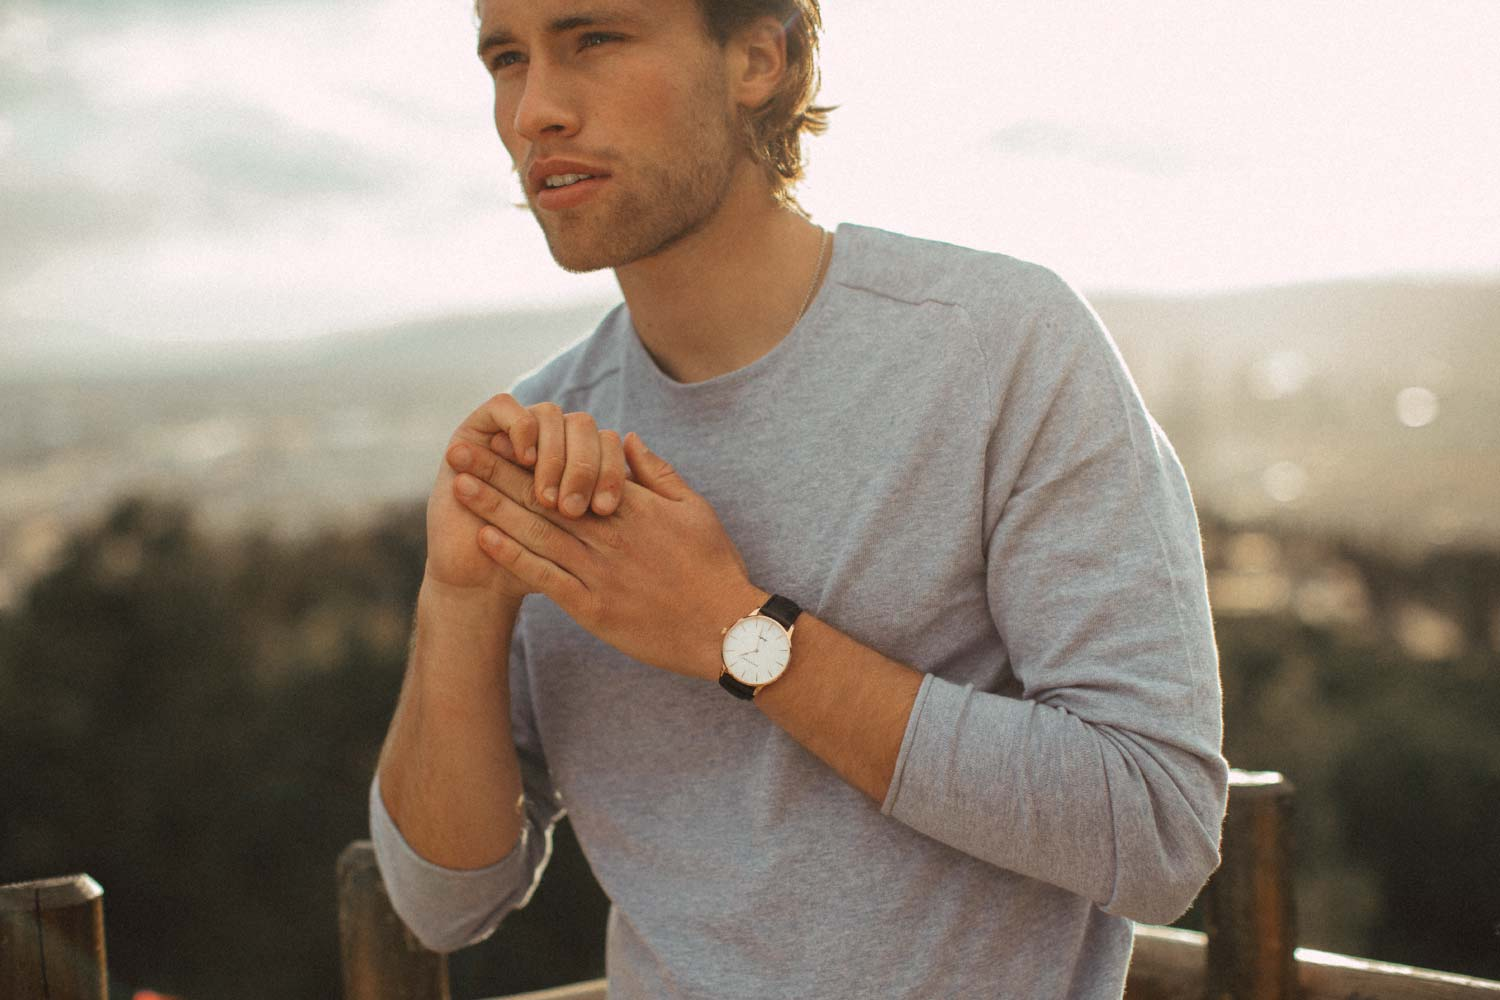 Man in grey shirt wearing the rose gold Aquafino watch with black strap